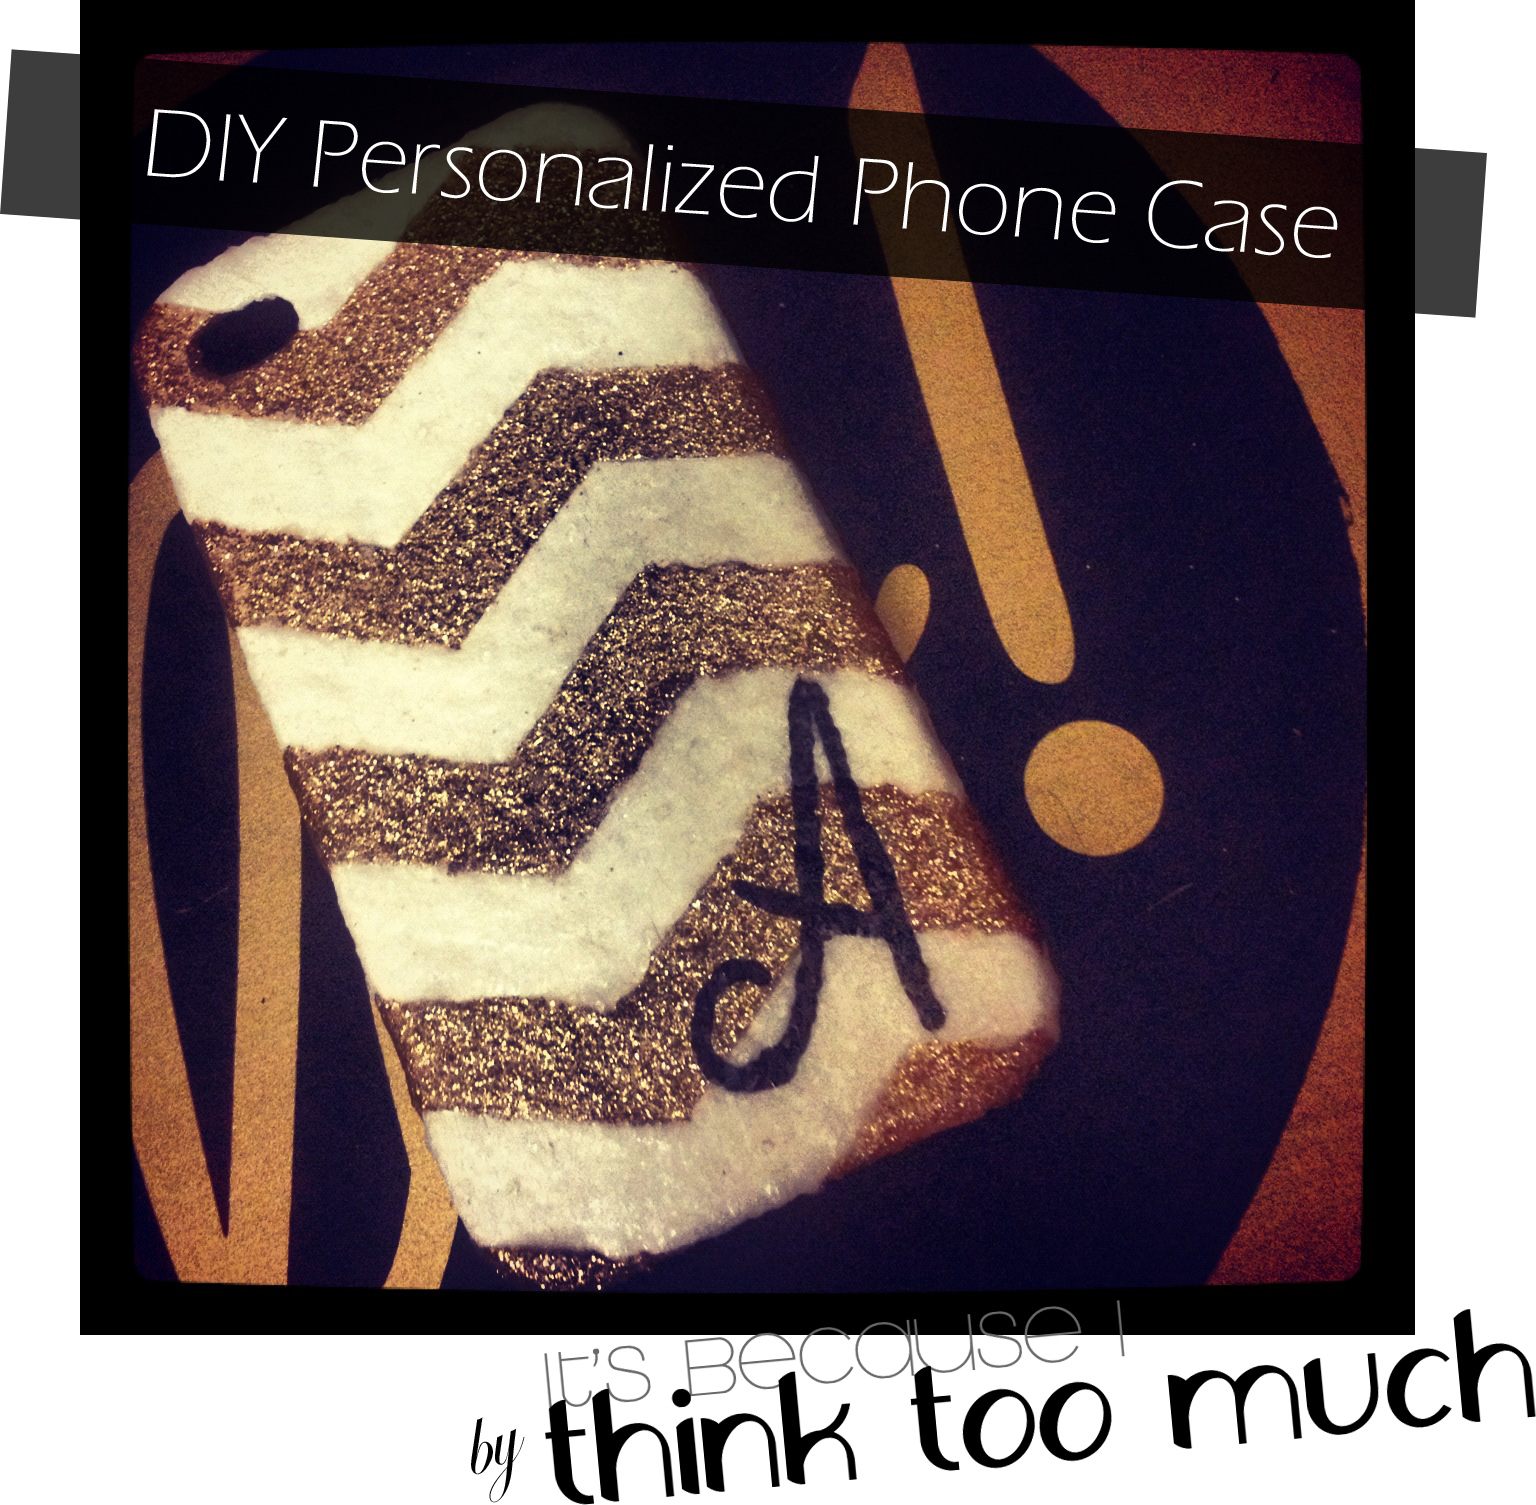 diy personalized phone case by adiel on ibittm